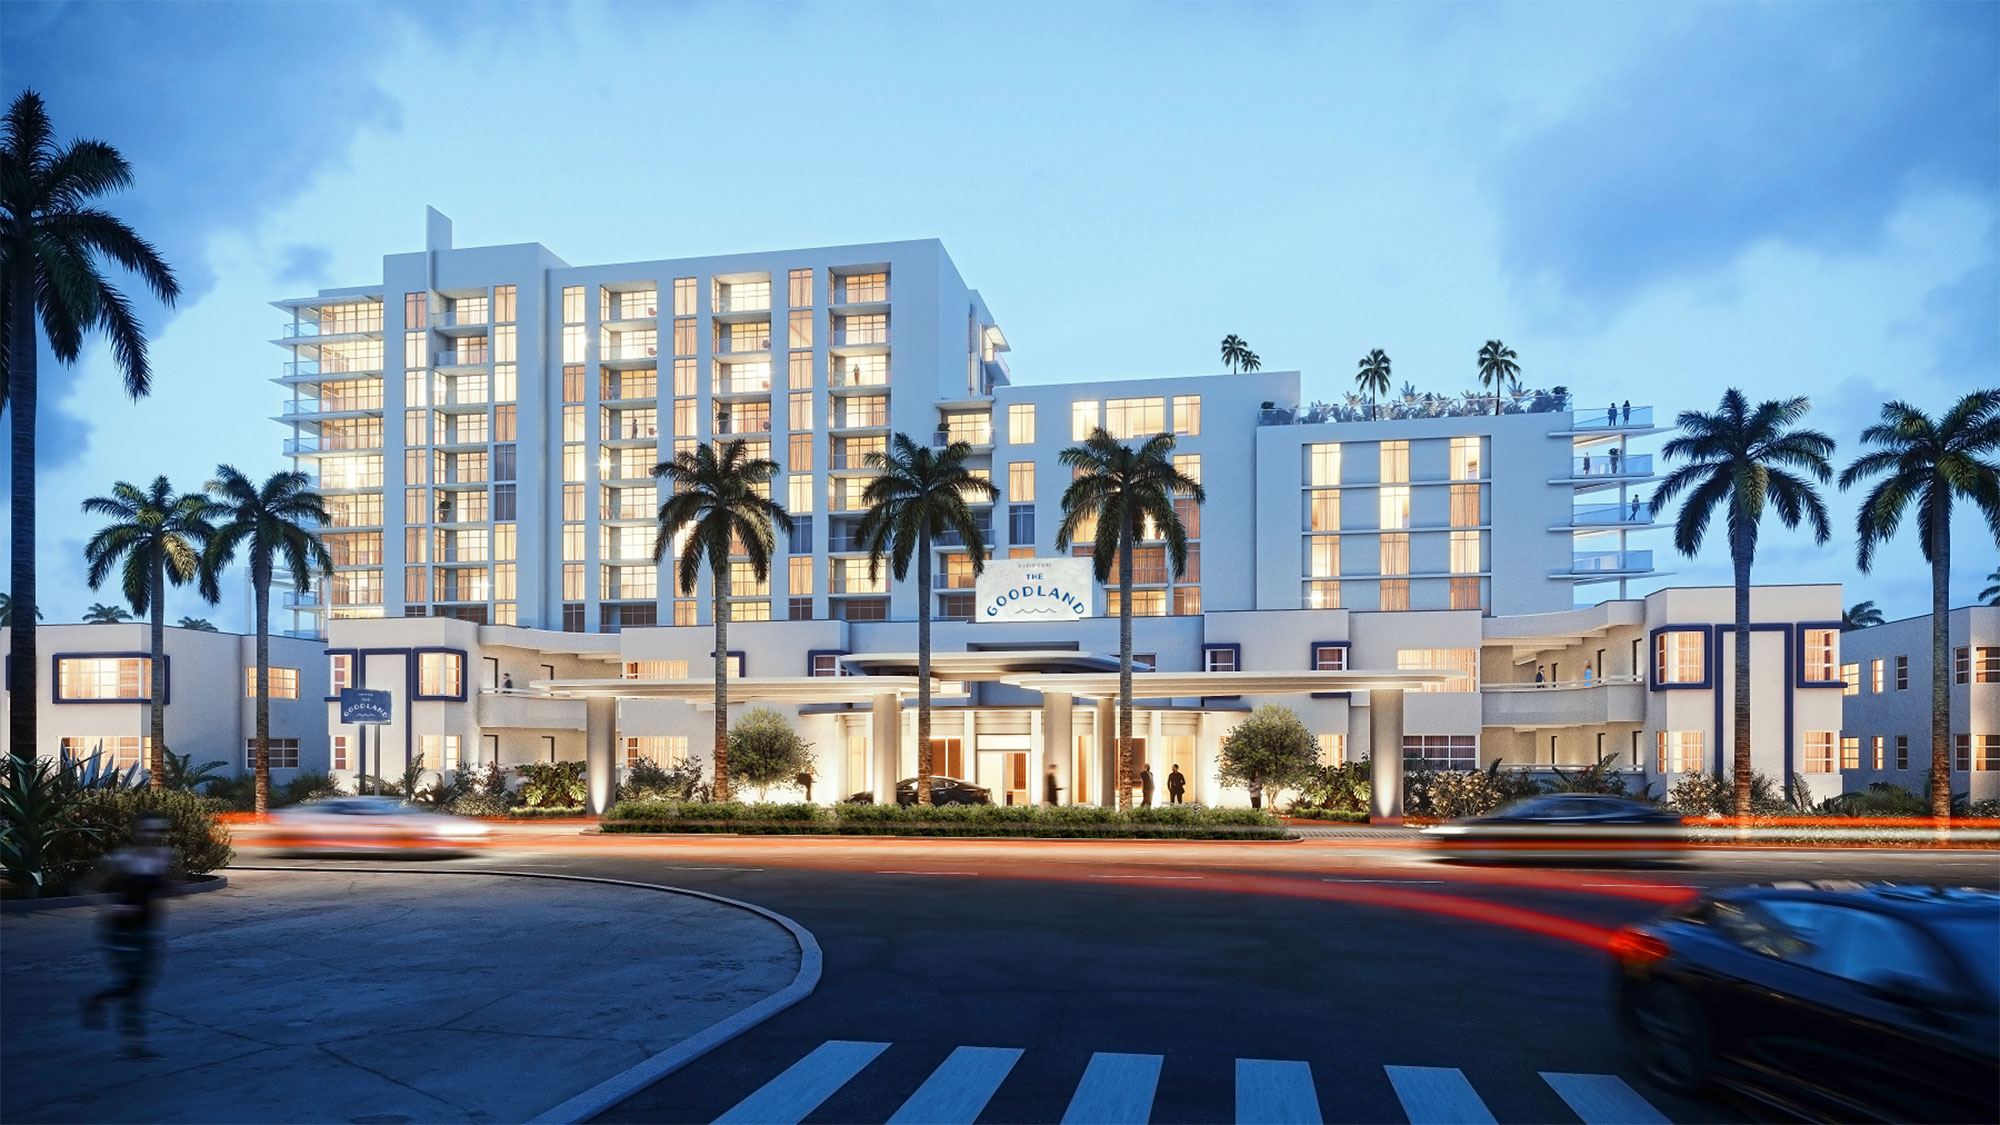 Kimpton Goodland Hotel opens on the site of a Fort Lauderdale landmark